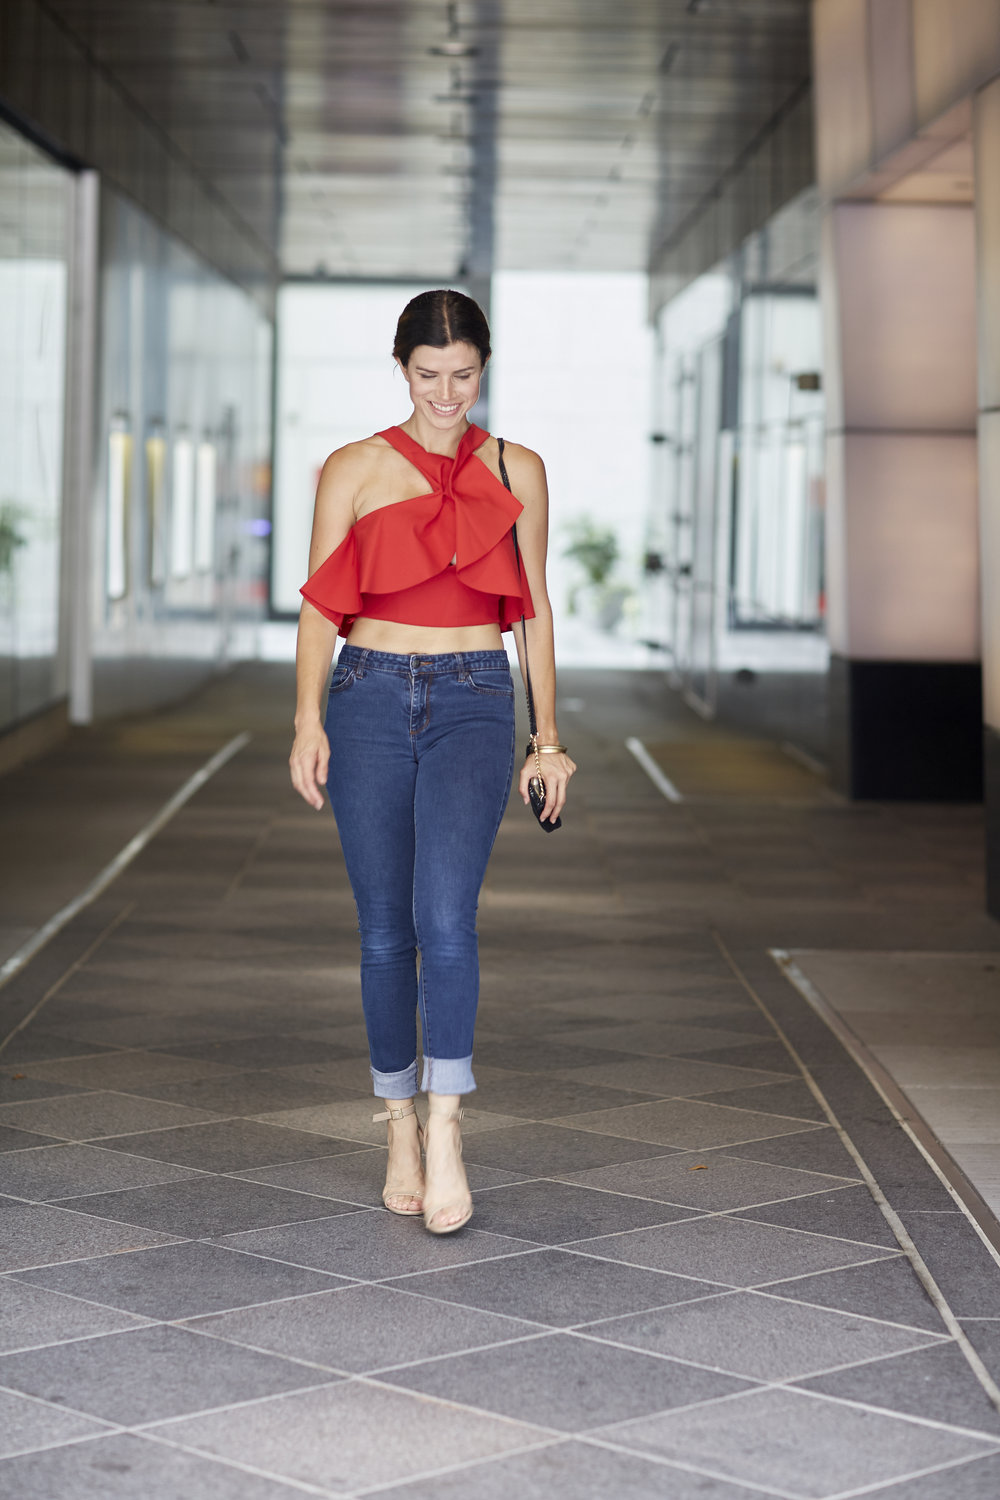 kendall kylie crop top red